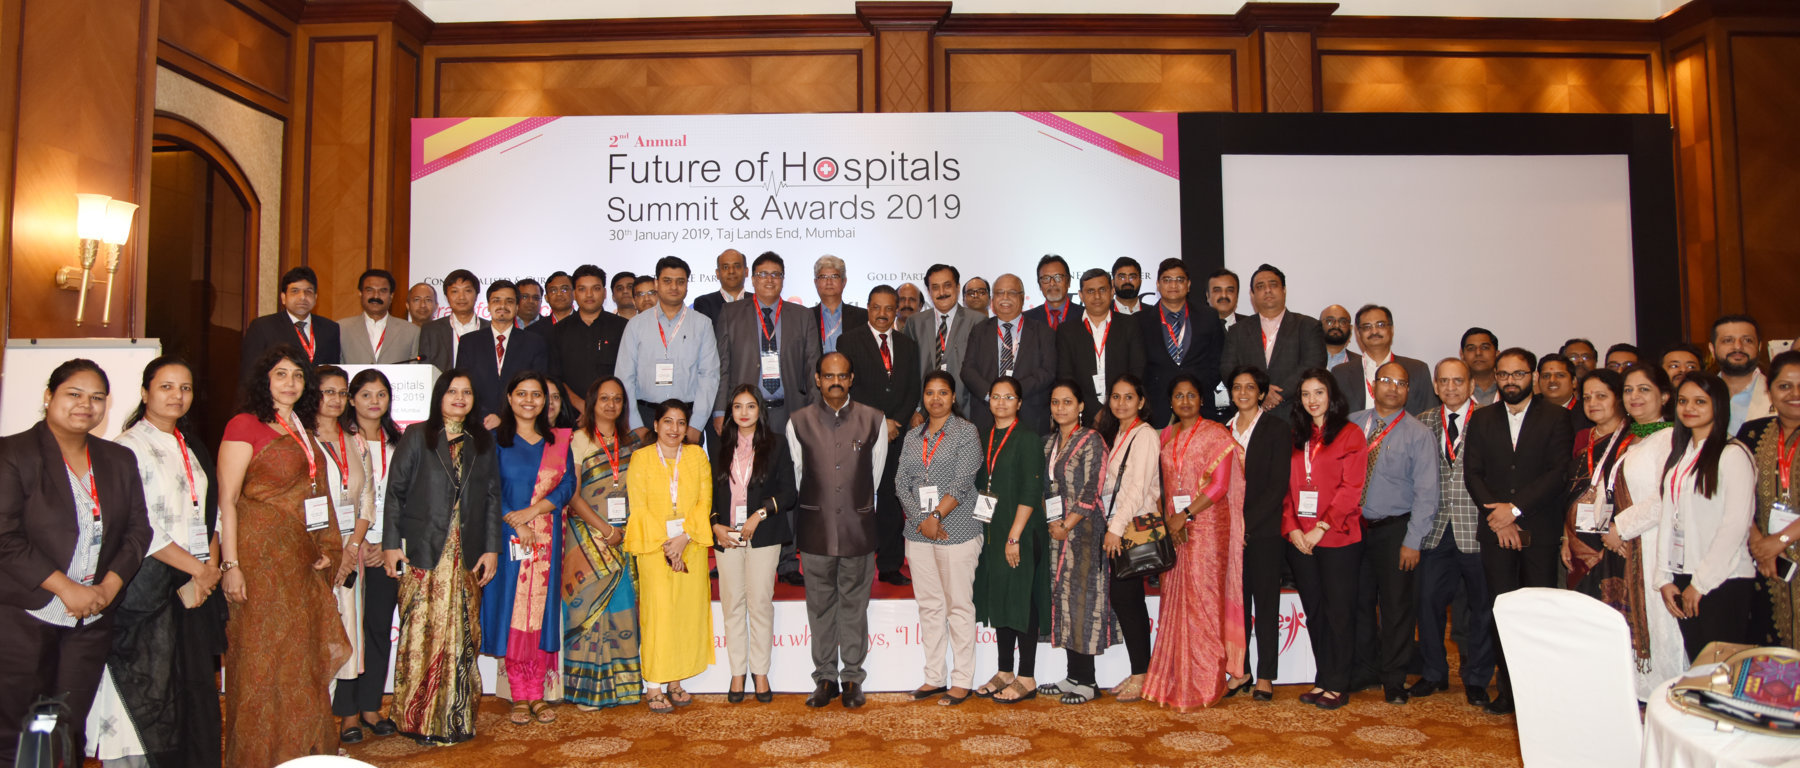 2nd Annual Future of Hospitals Summit & Awards 2019